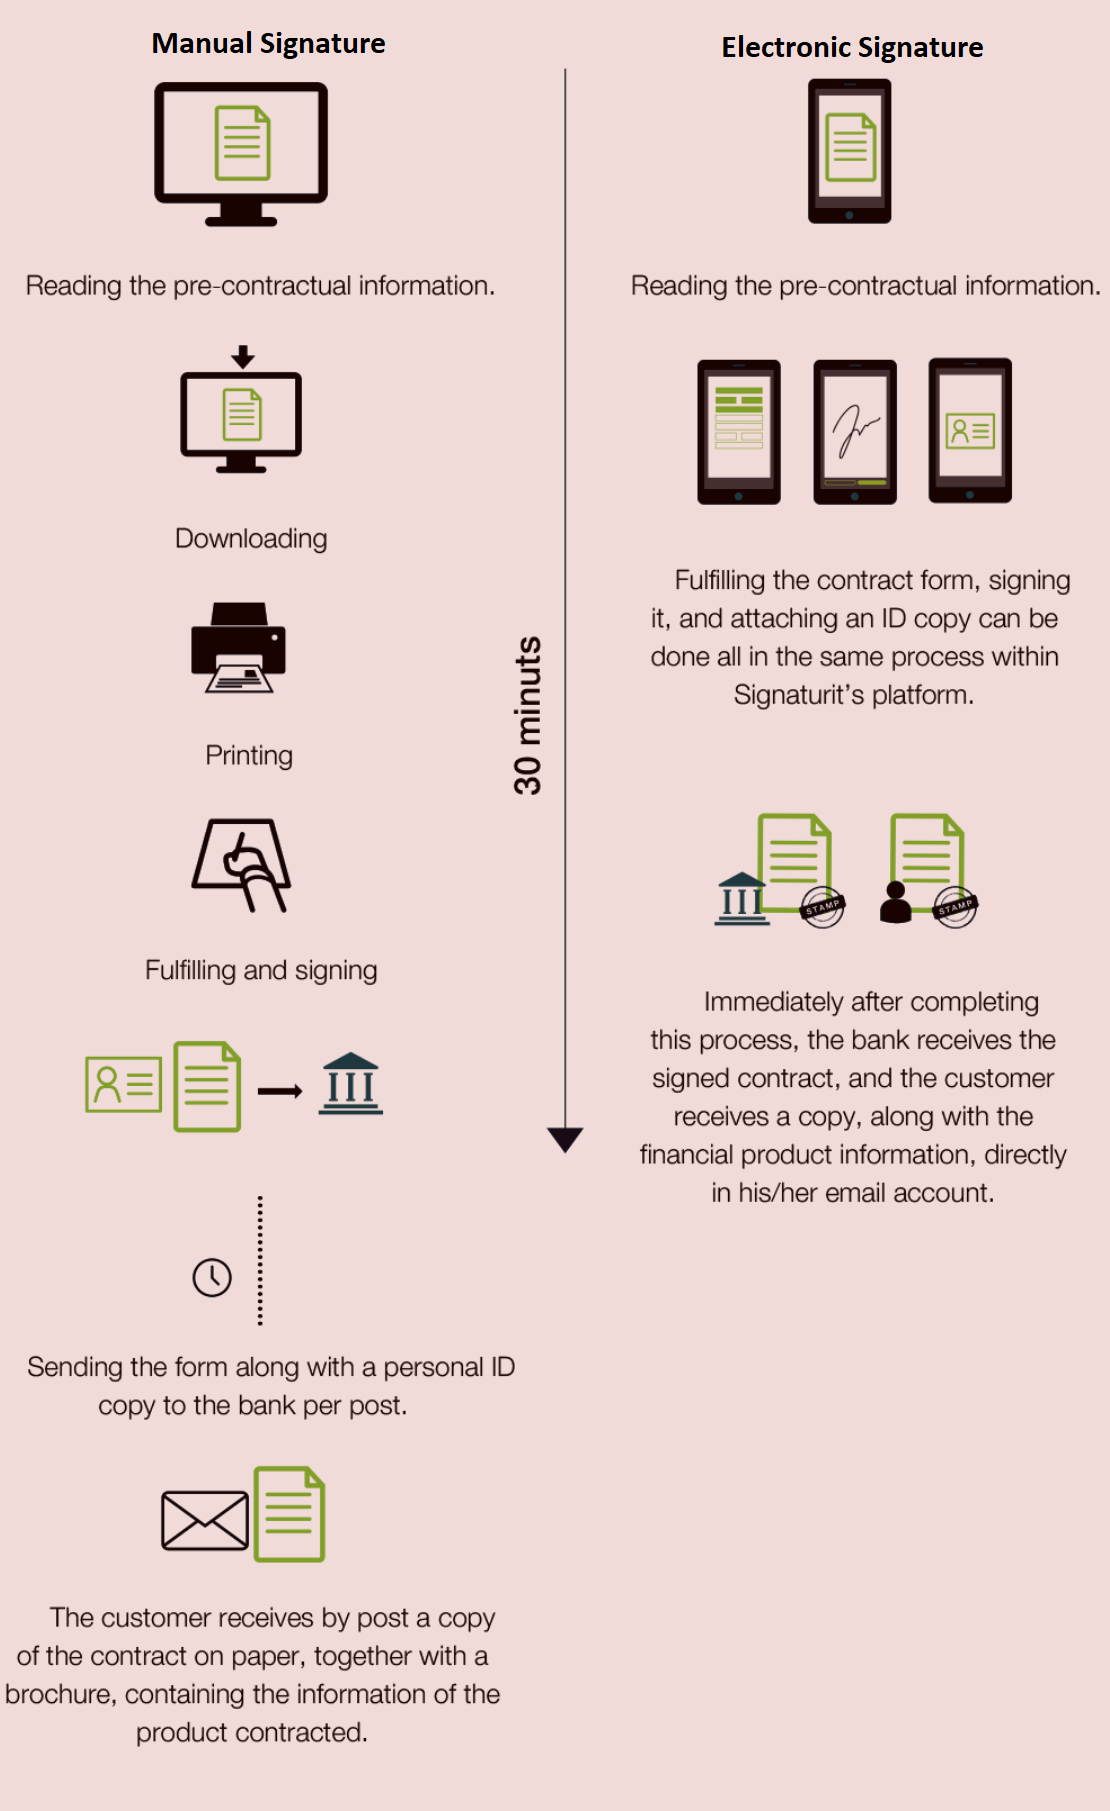 e signature for account opening in banks